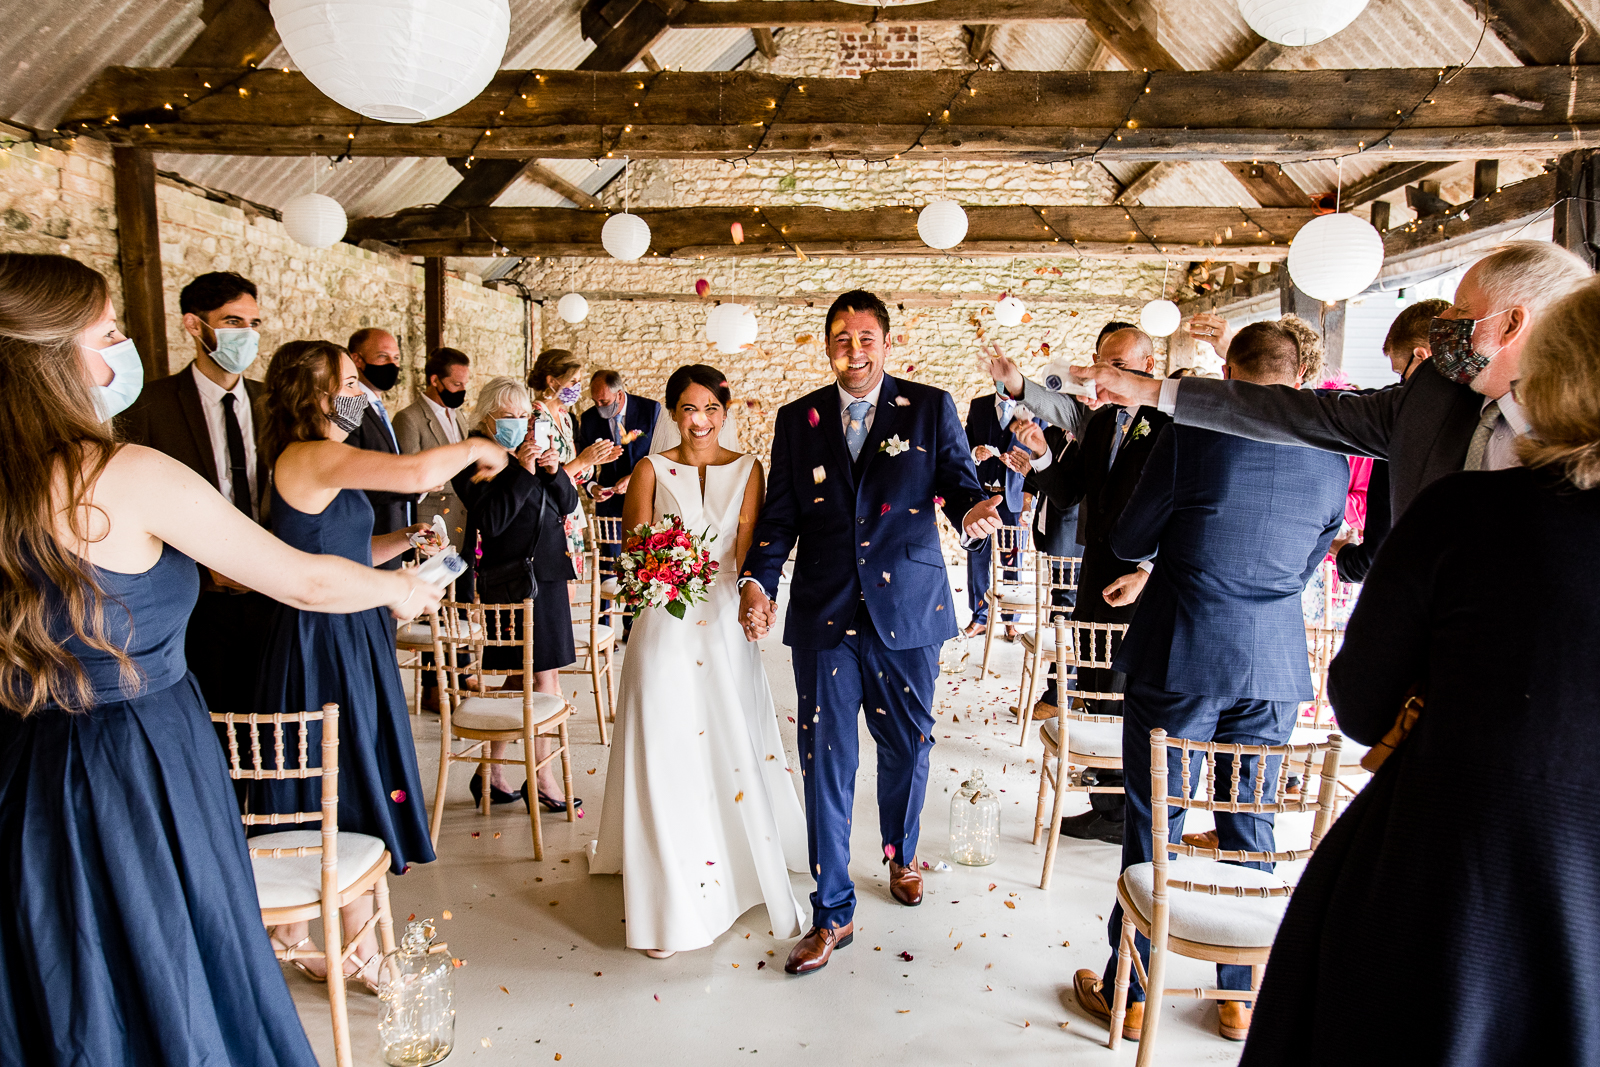 Wedding ceremony in rustic barn at East Afton Farmhouse, with guests wearing masks